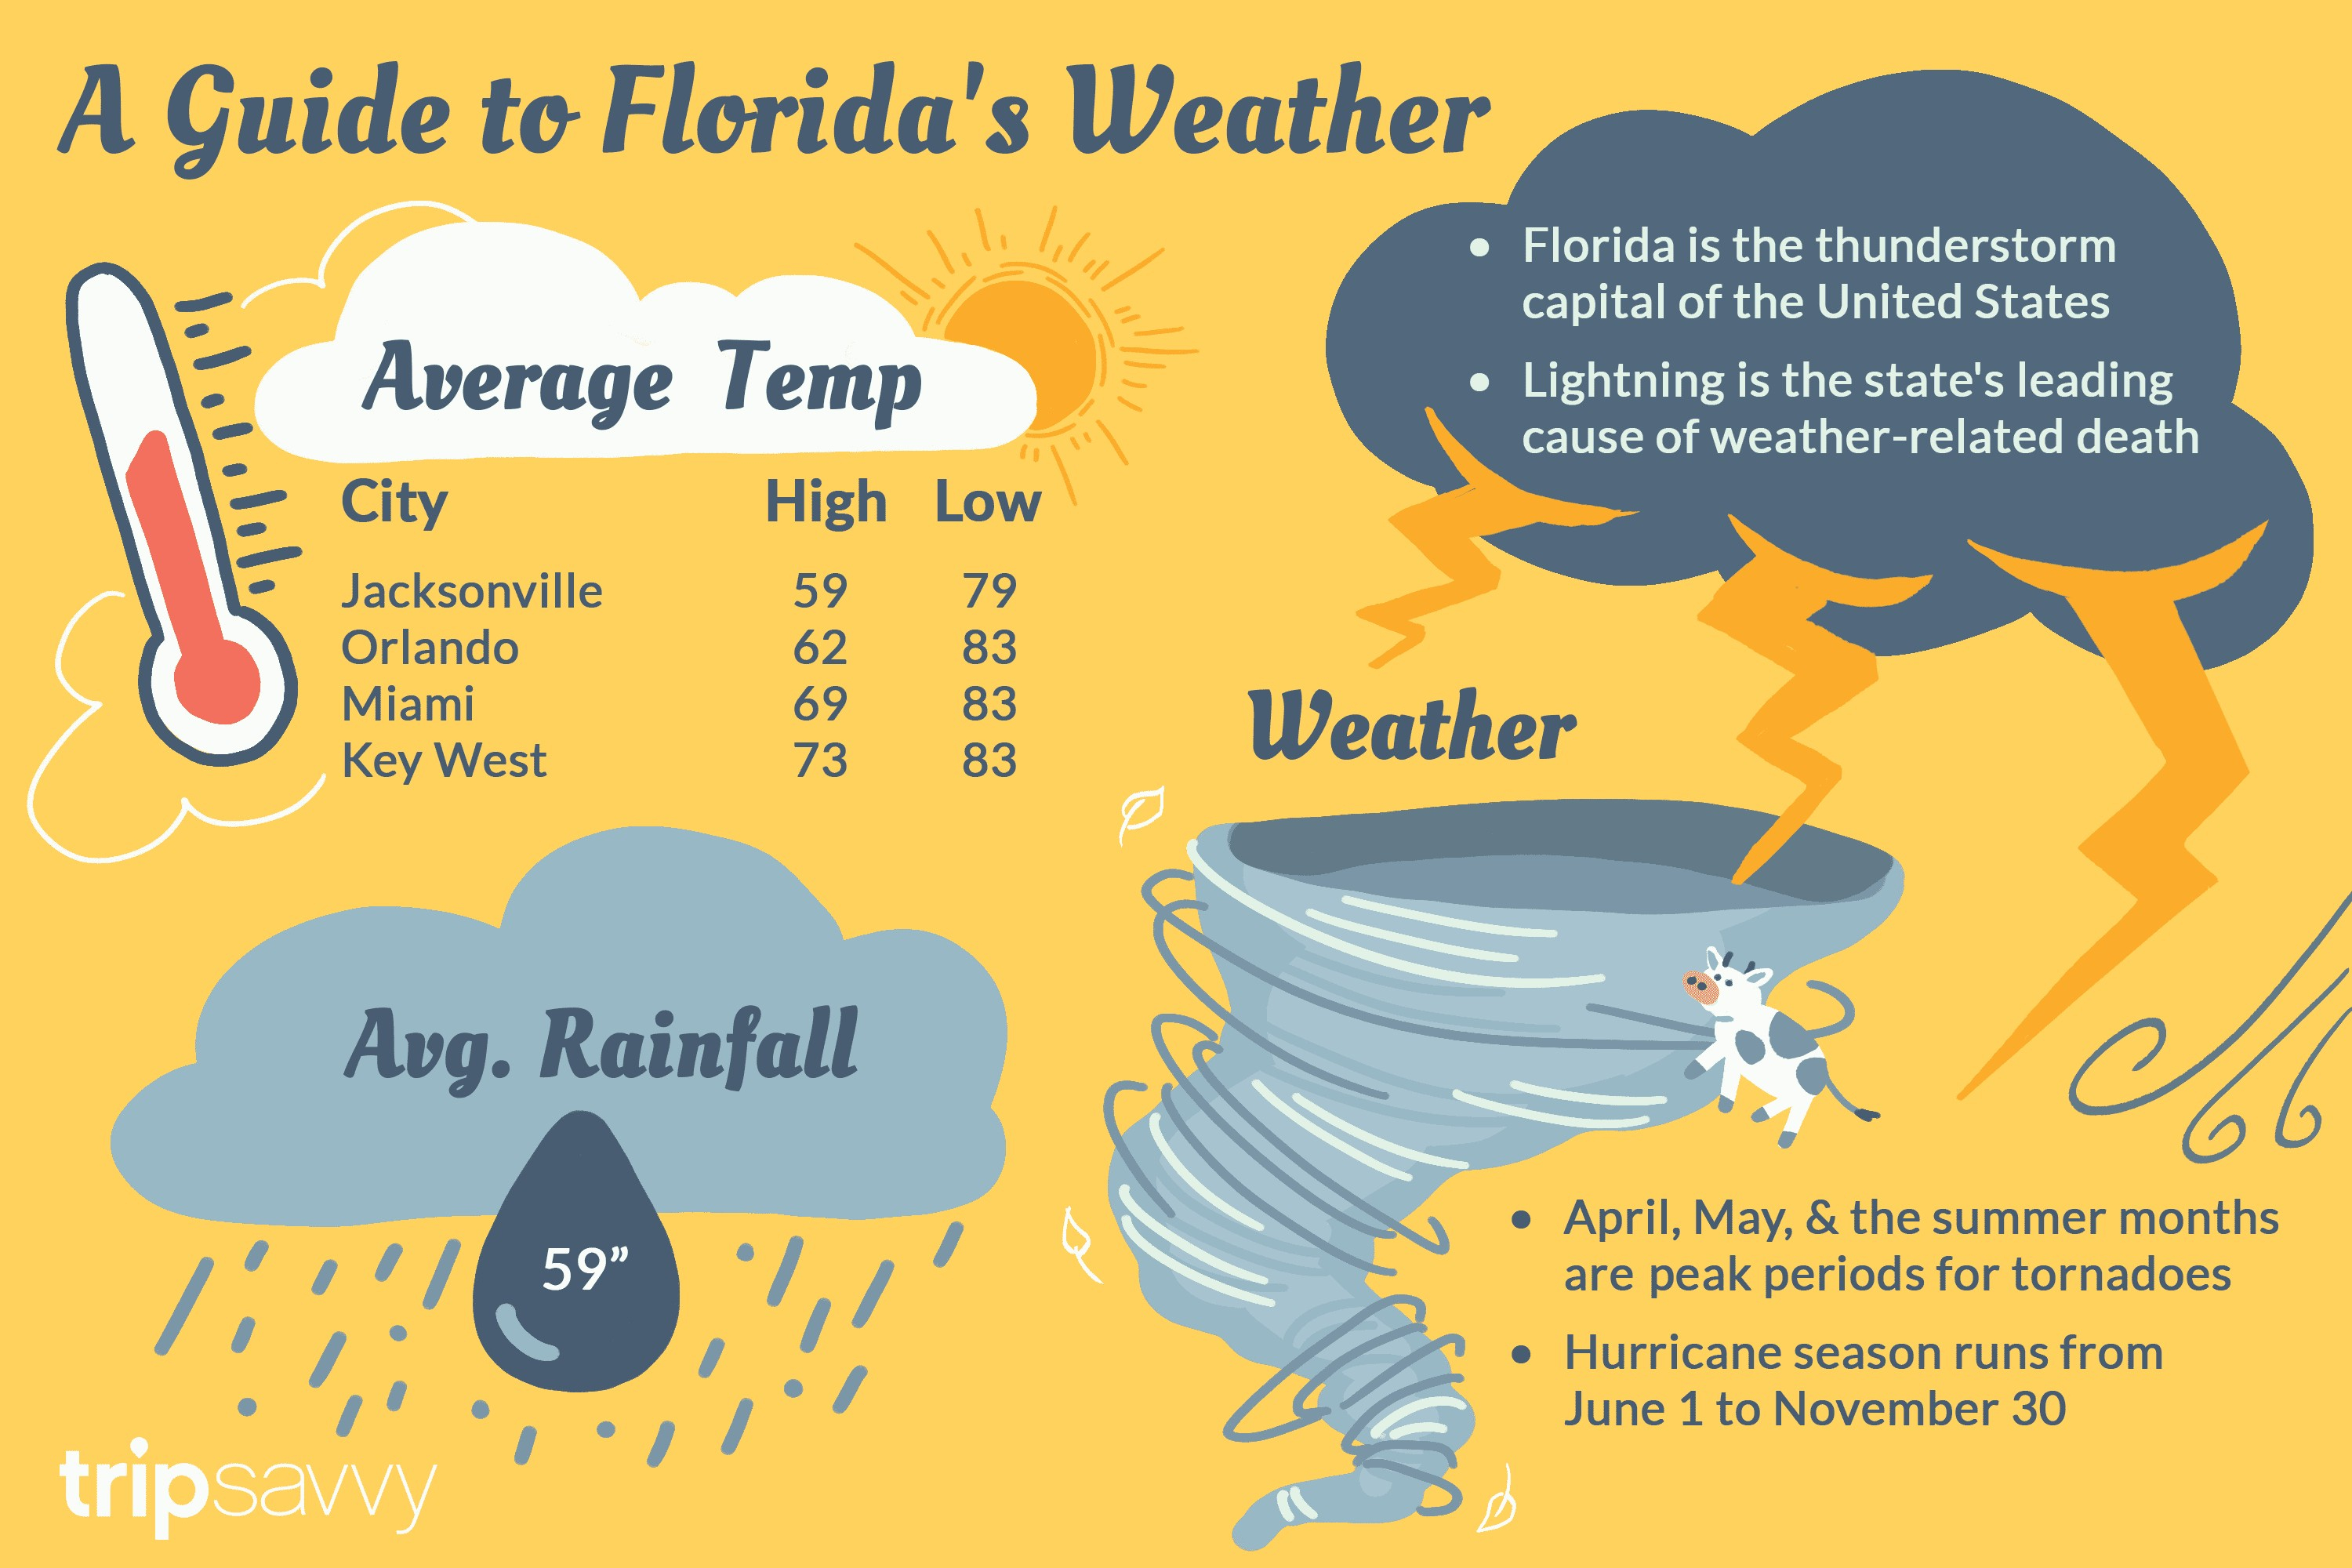 Heat And Humidity Map Ofthe Us Cnletbvuiaaxy3U Best Of Florida S - Florida Humidity Map